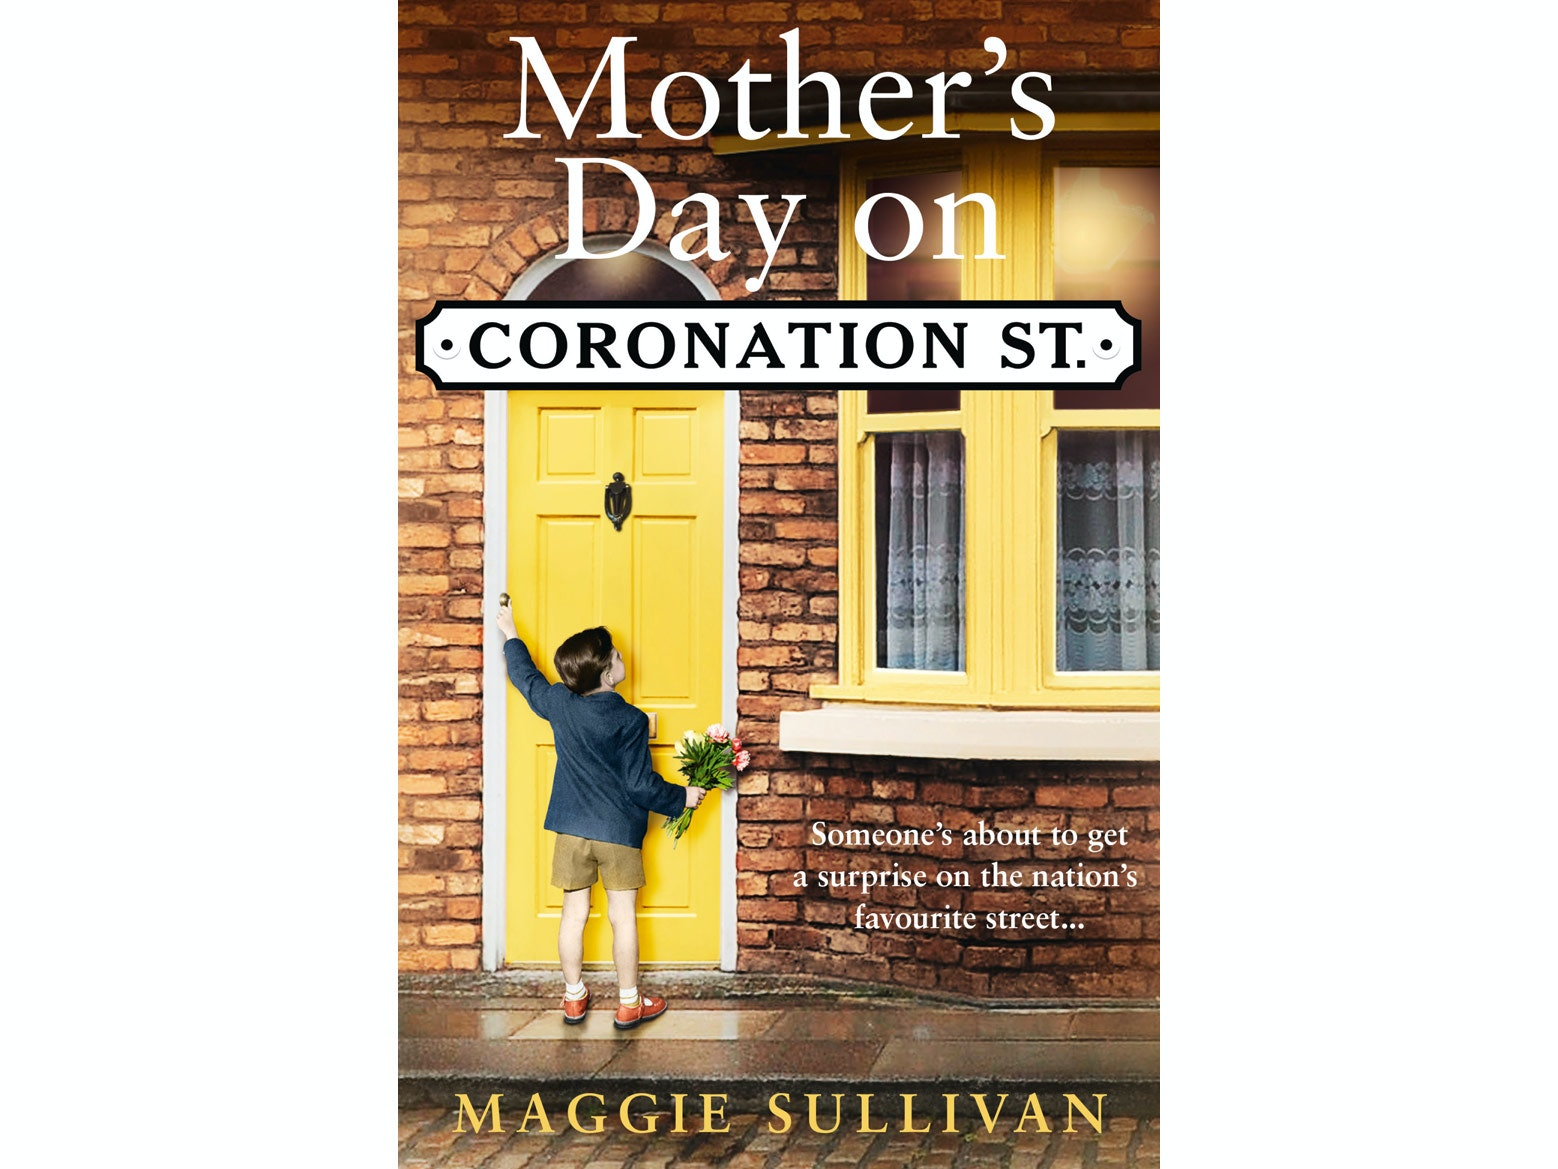 Mother's Day on Coronation Street by Maggie Sullivan  sweepstakes